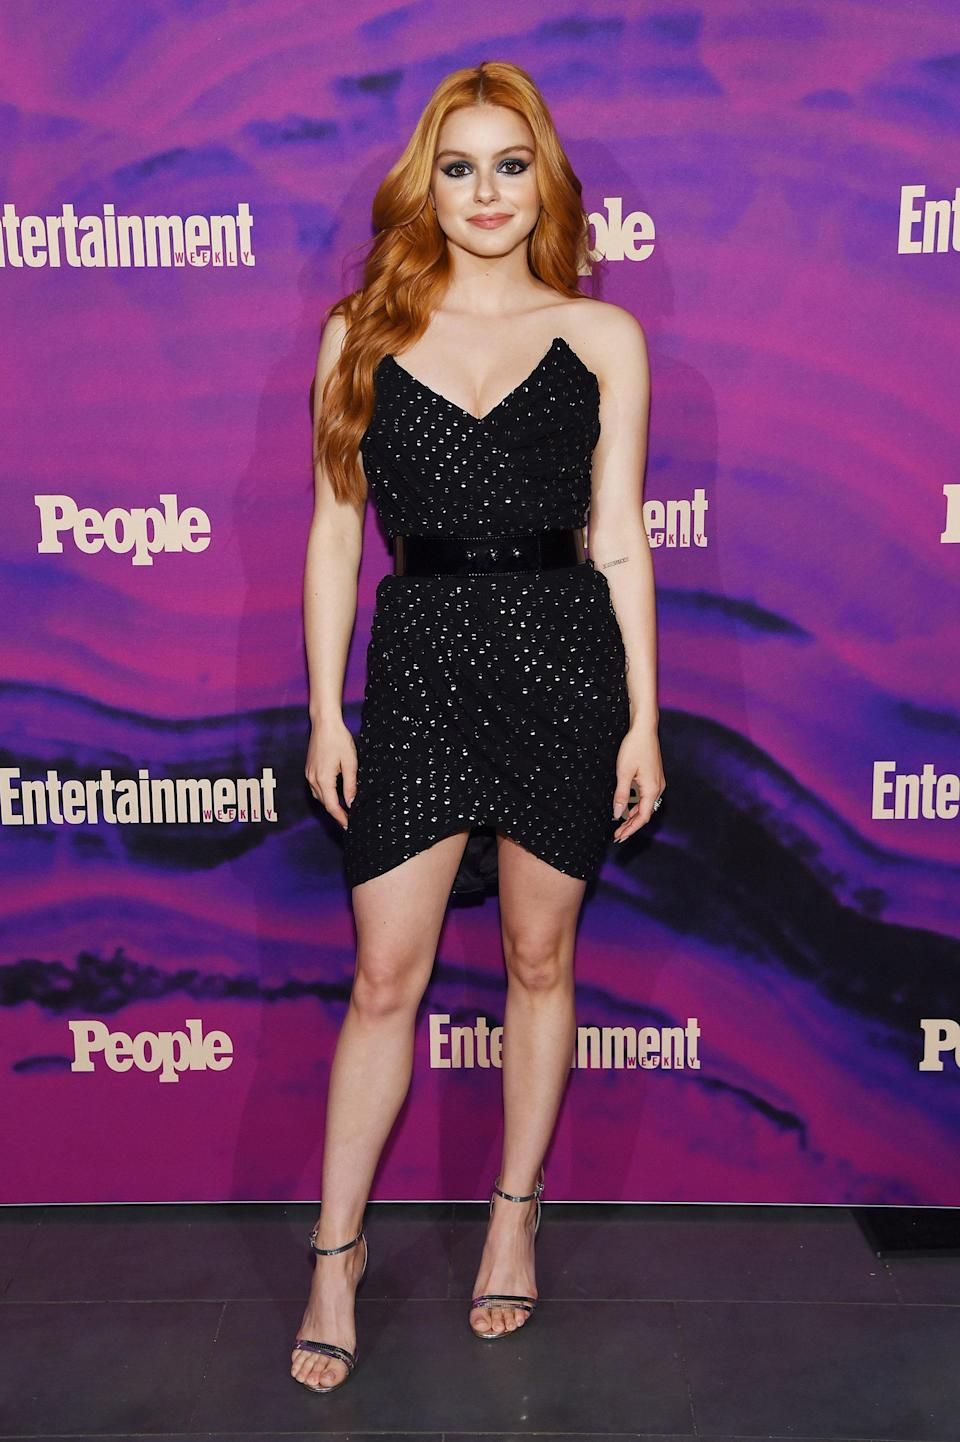 We can't get enough of Ariel's red hair and sparkly black dress.